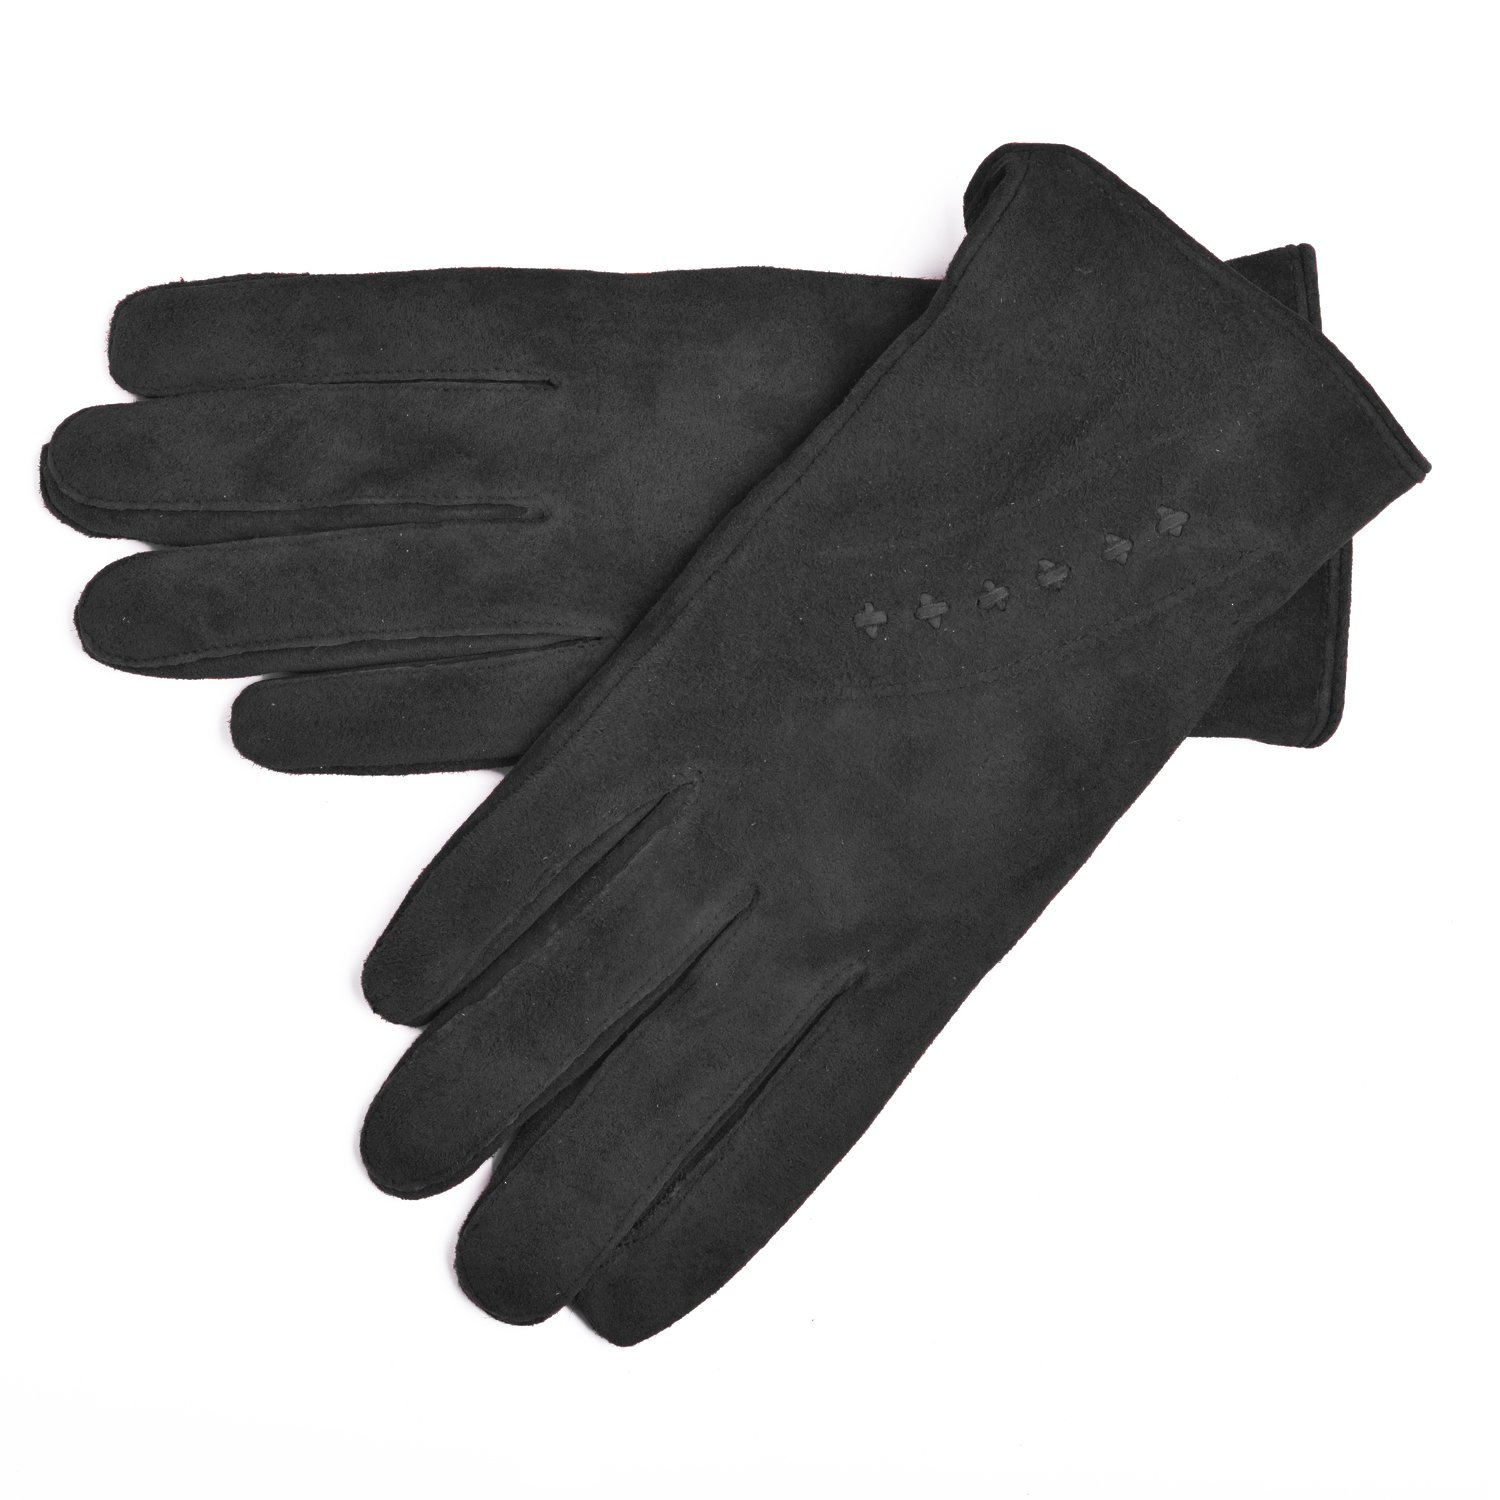 Lambland Ladies Genuine Suede Gloves with Fleece Lining and Stitching Detail in Black Size Medium